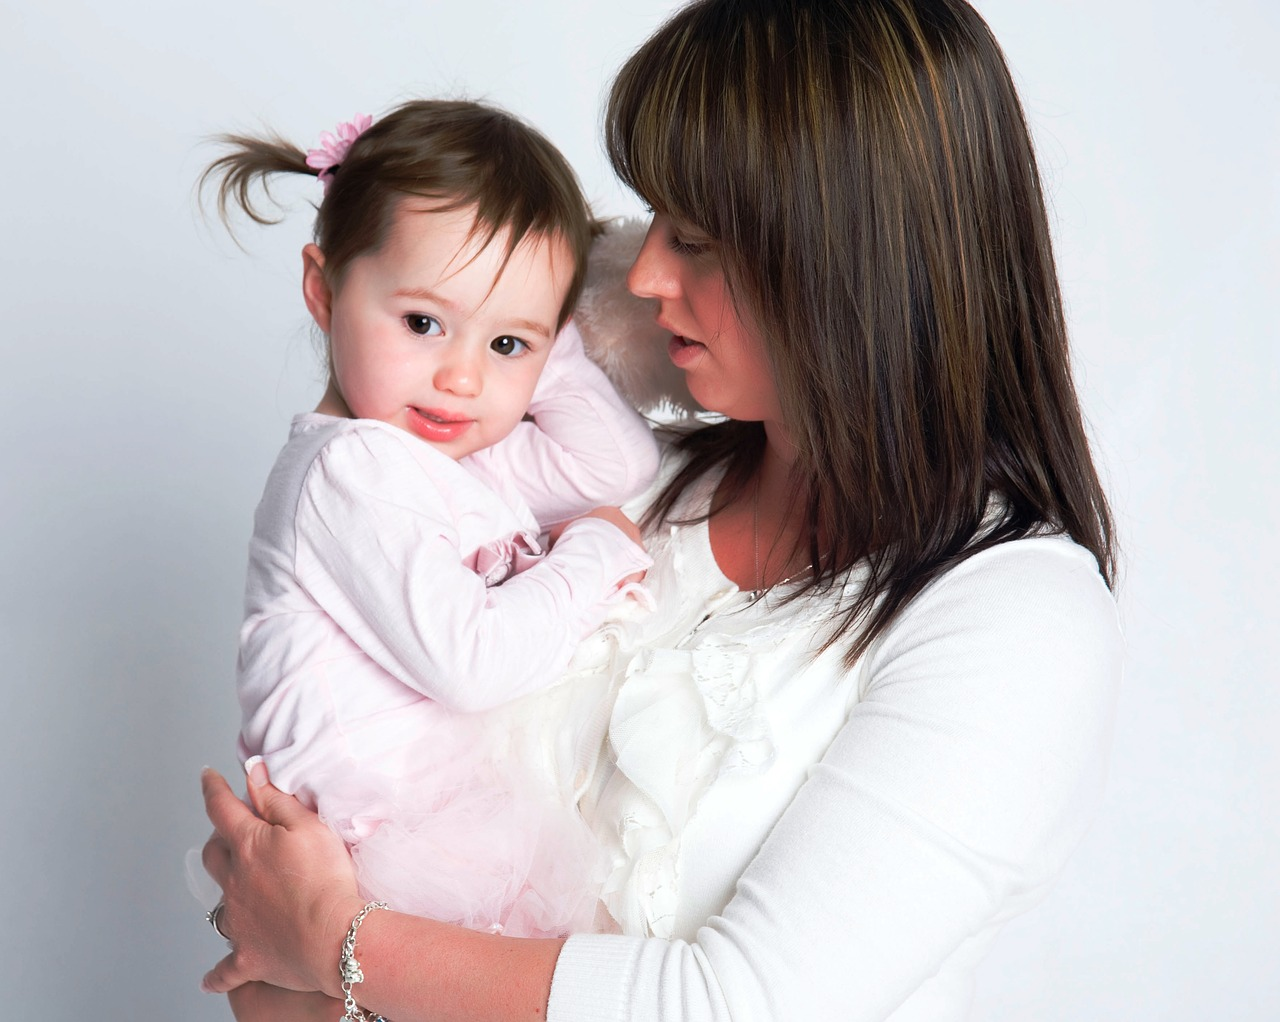 mother-and-daughter-2078075_1280